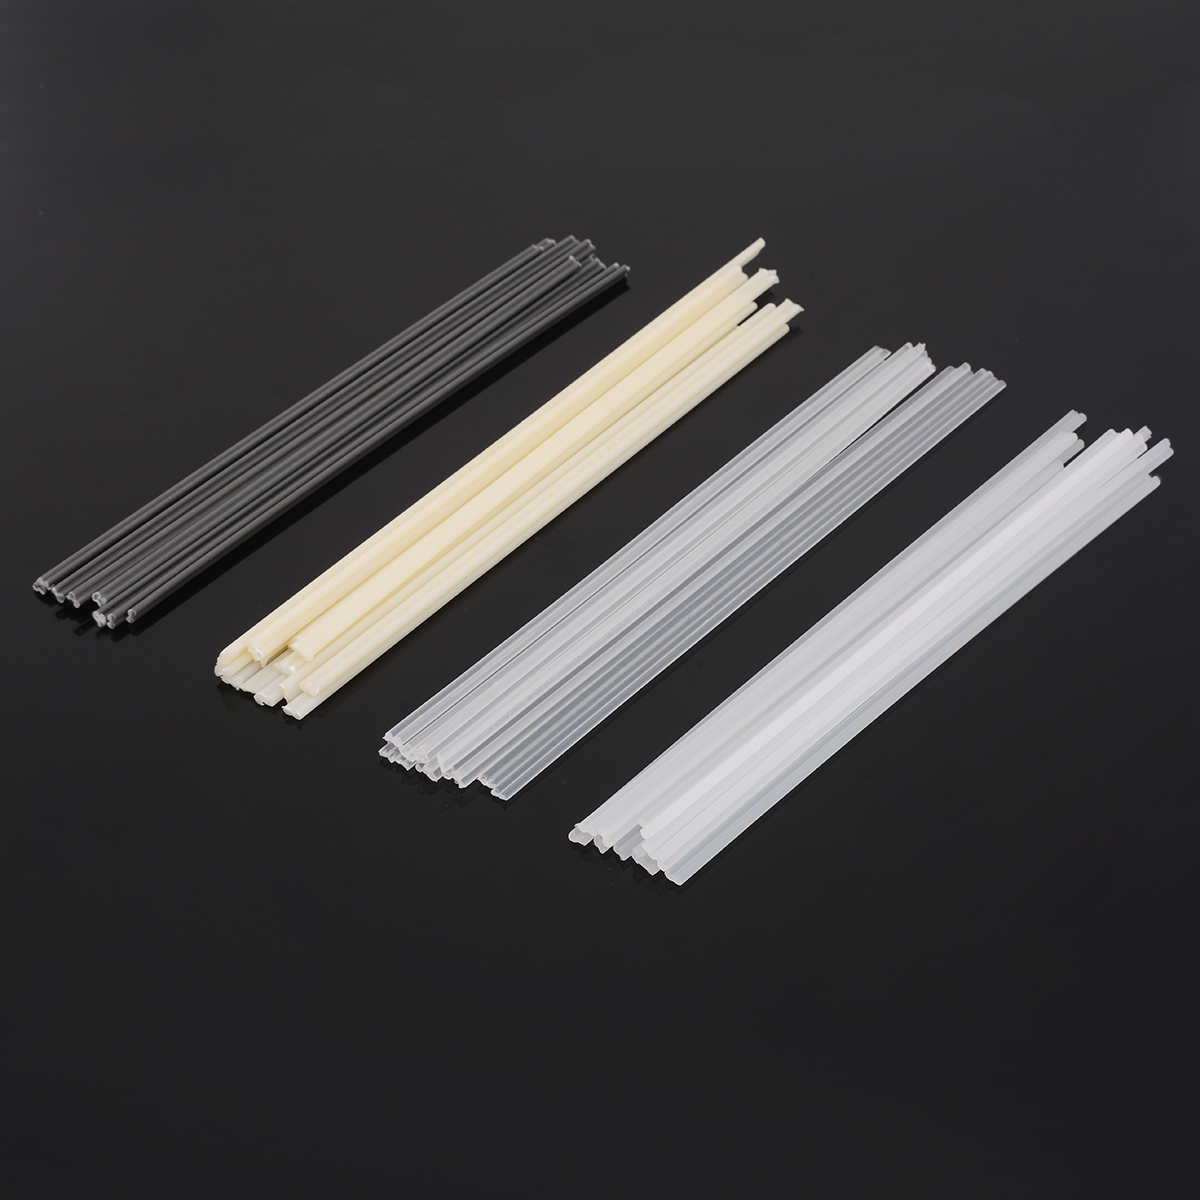 50pcs 200mm Length ABS/PP/PVC/PE Plastic Welding Rods Car Bumper Repair Floor Solder Soldering Welding Sticks for Plastic Welder